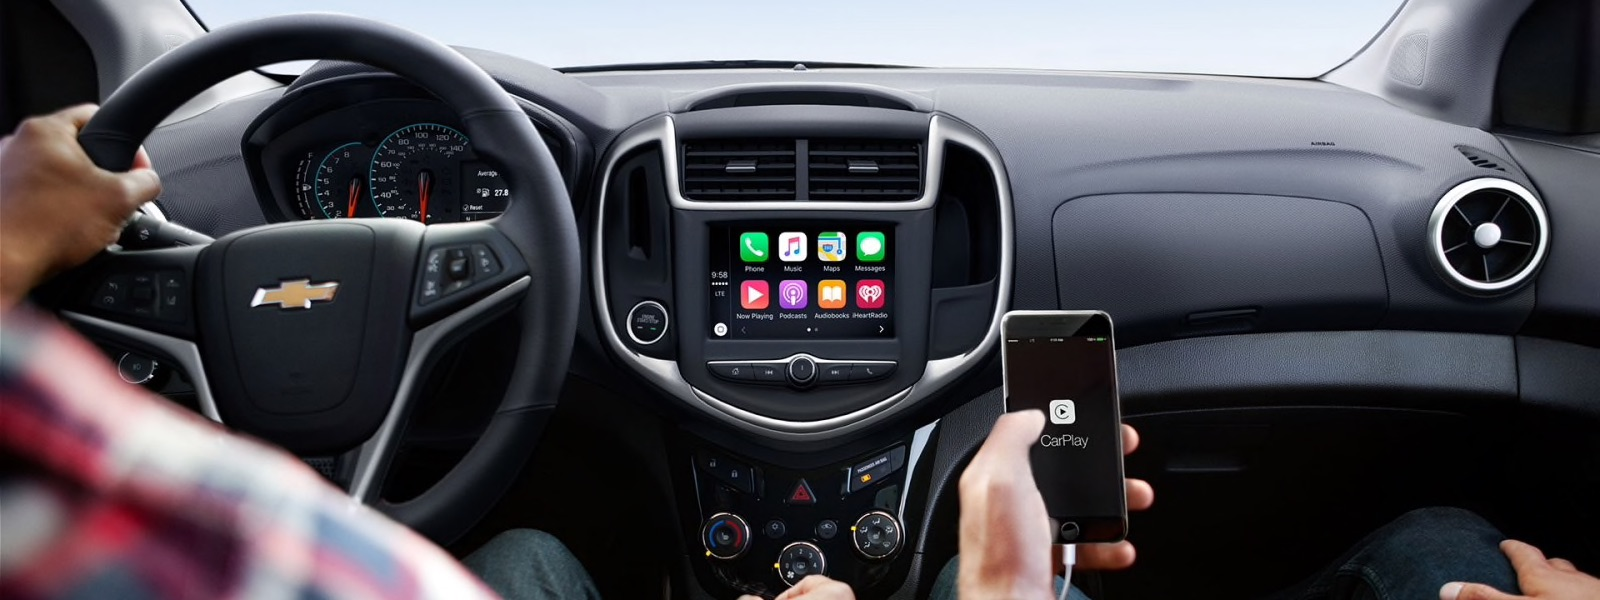 Passengers inside a 2017 Chevy Sonic are using a phone to connect to the infotainment system.